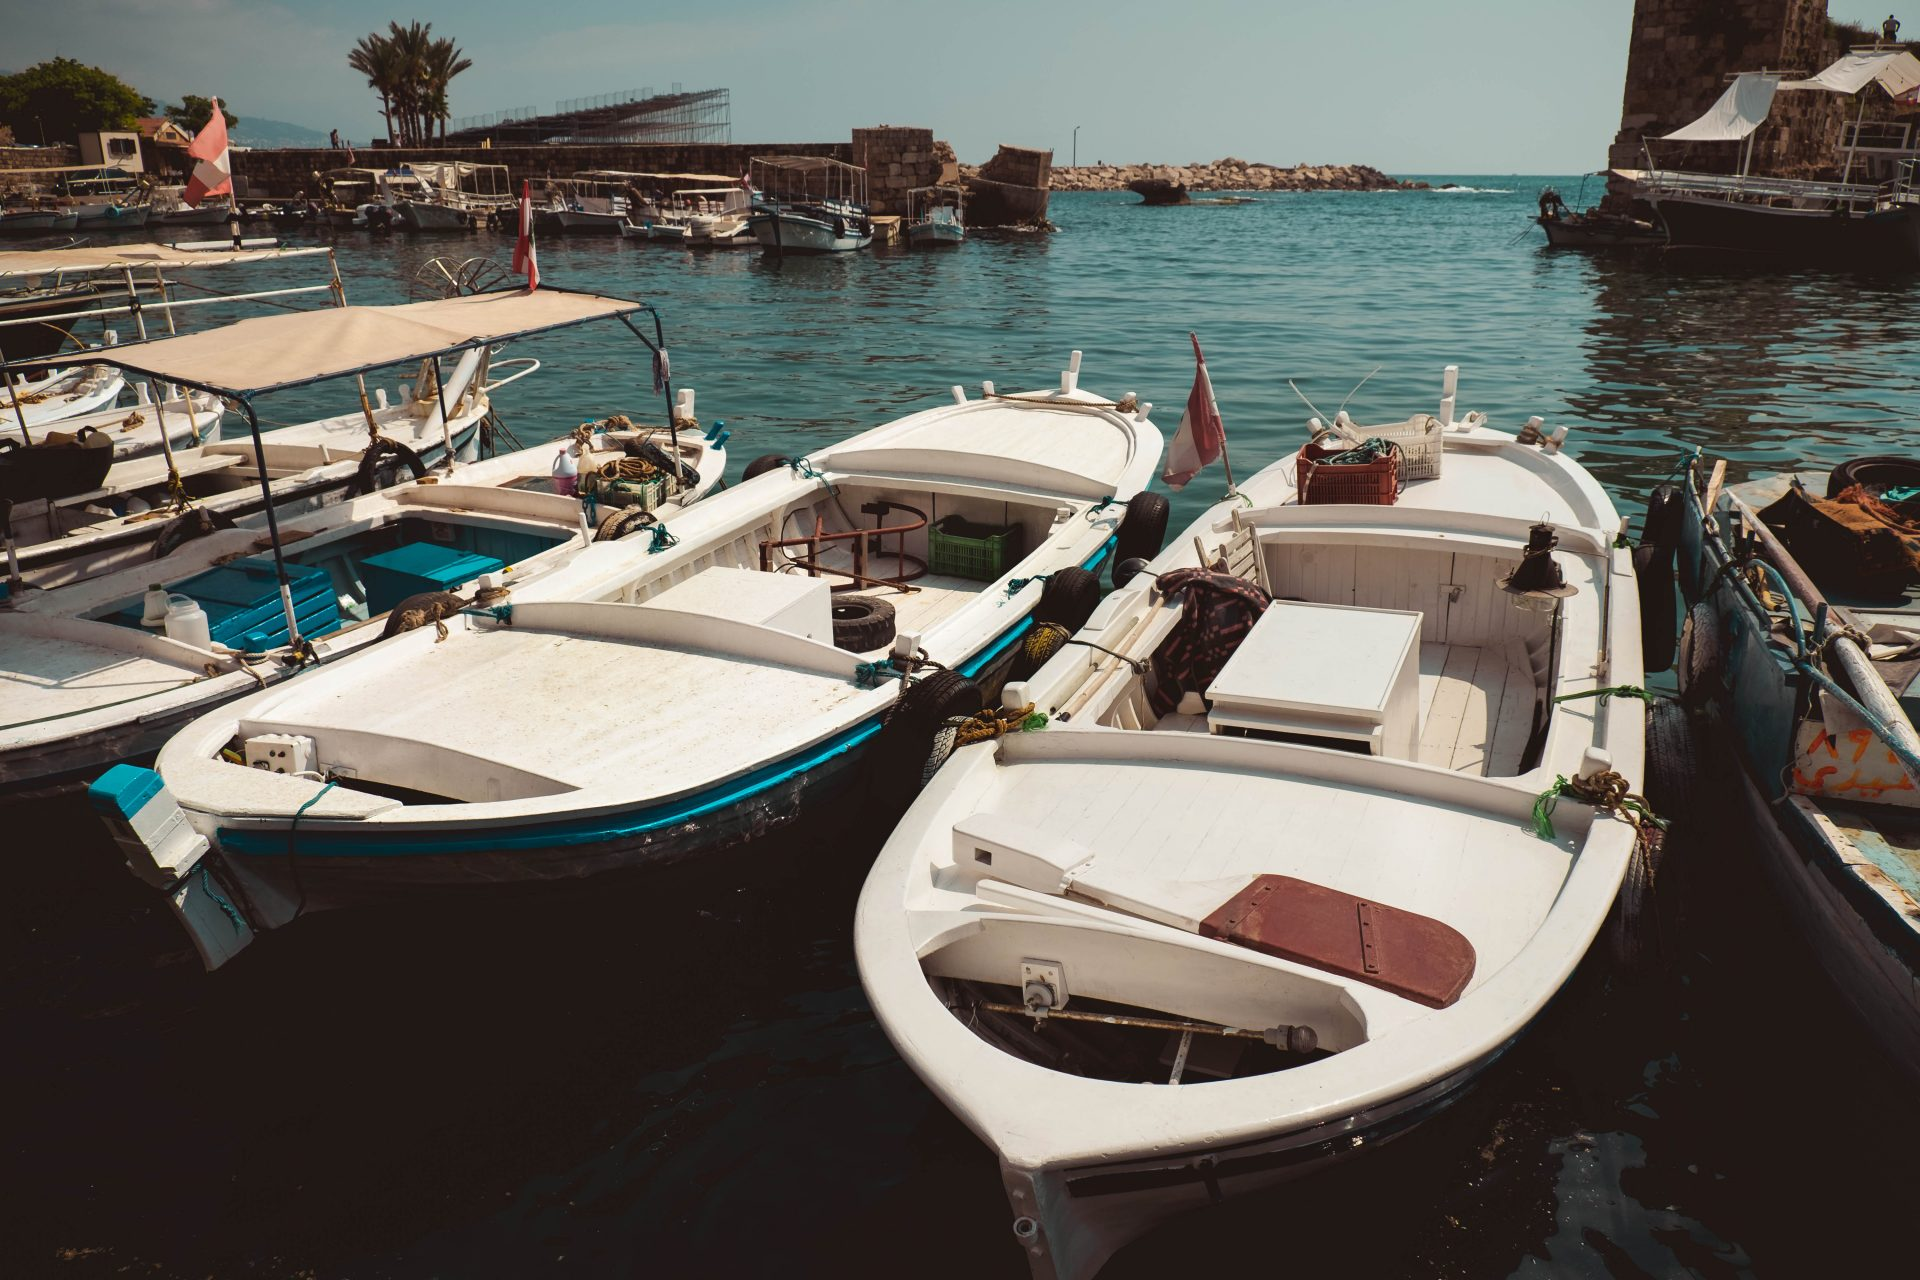 Small dinghy in Byblos harbor photo by Jo Kassis